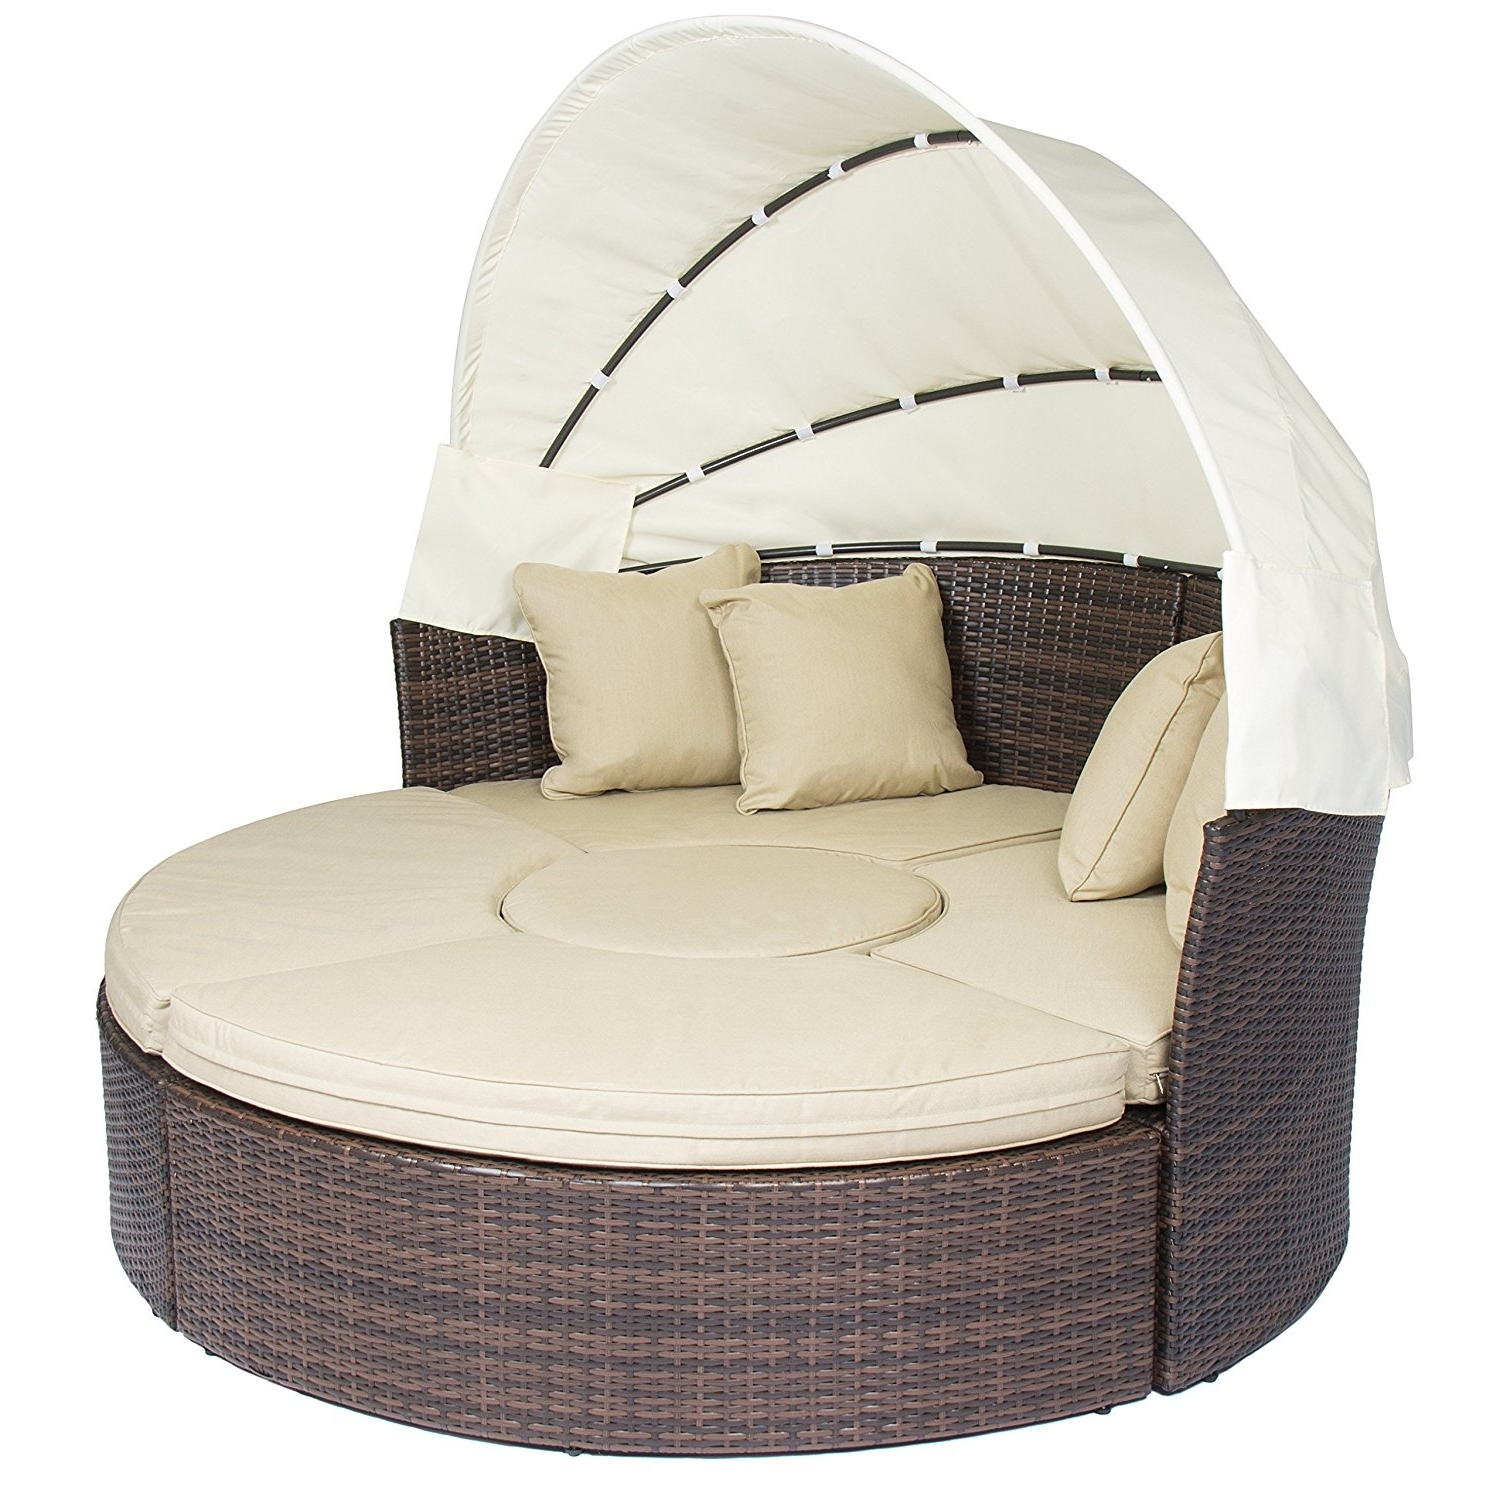 Newest Patio Sofas With Regard To Amazon : Outdoor Patio Sofa Furniture Round Retractable Canopy (View 7 of 15)